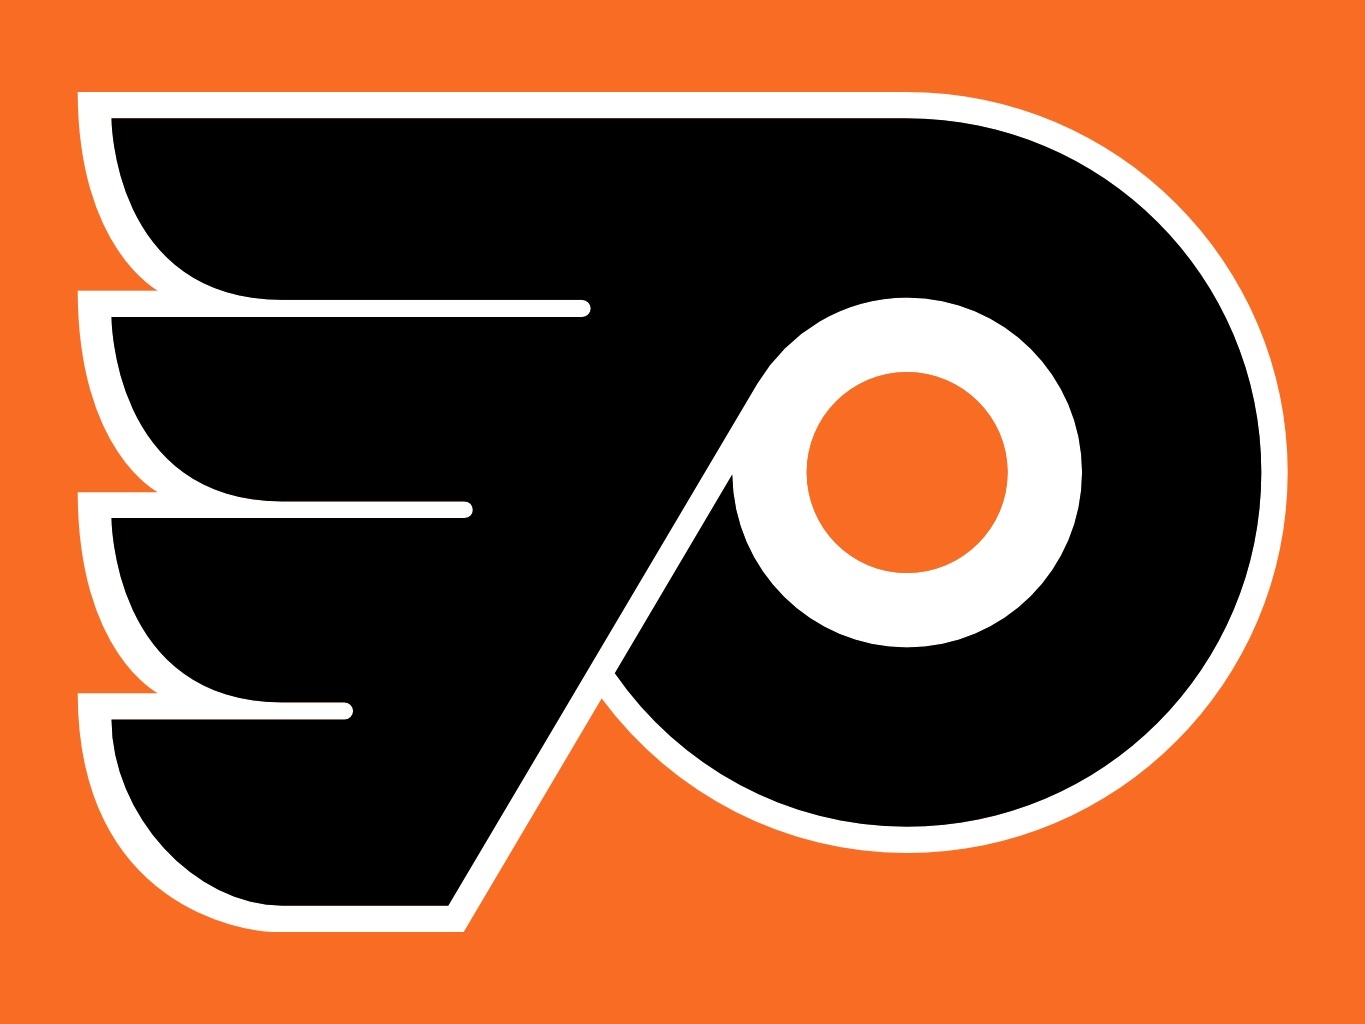 Philadelphia Flyers Logo Wallpaper 1365x1024